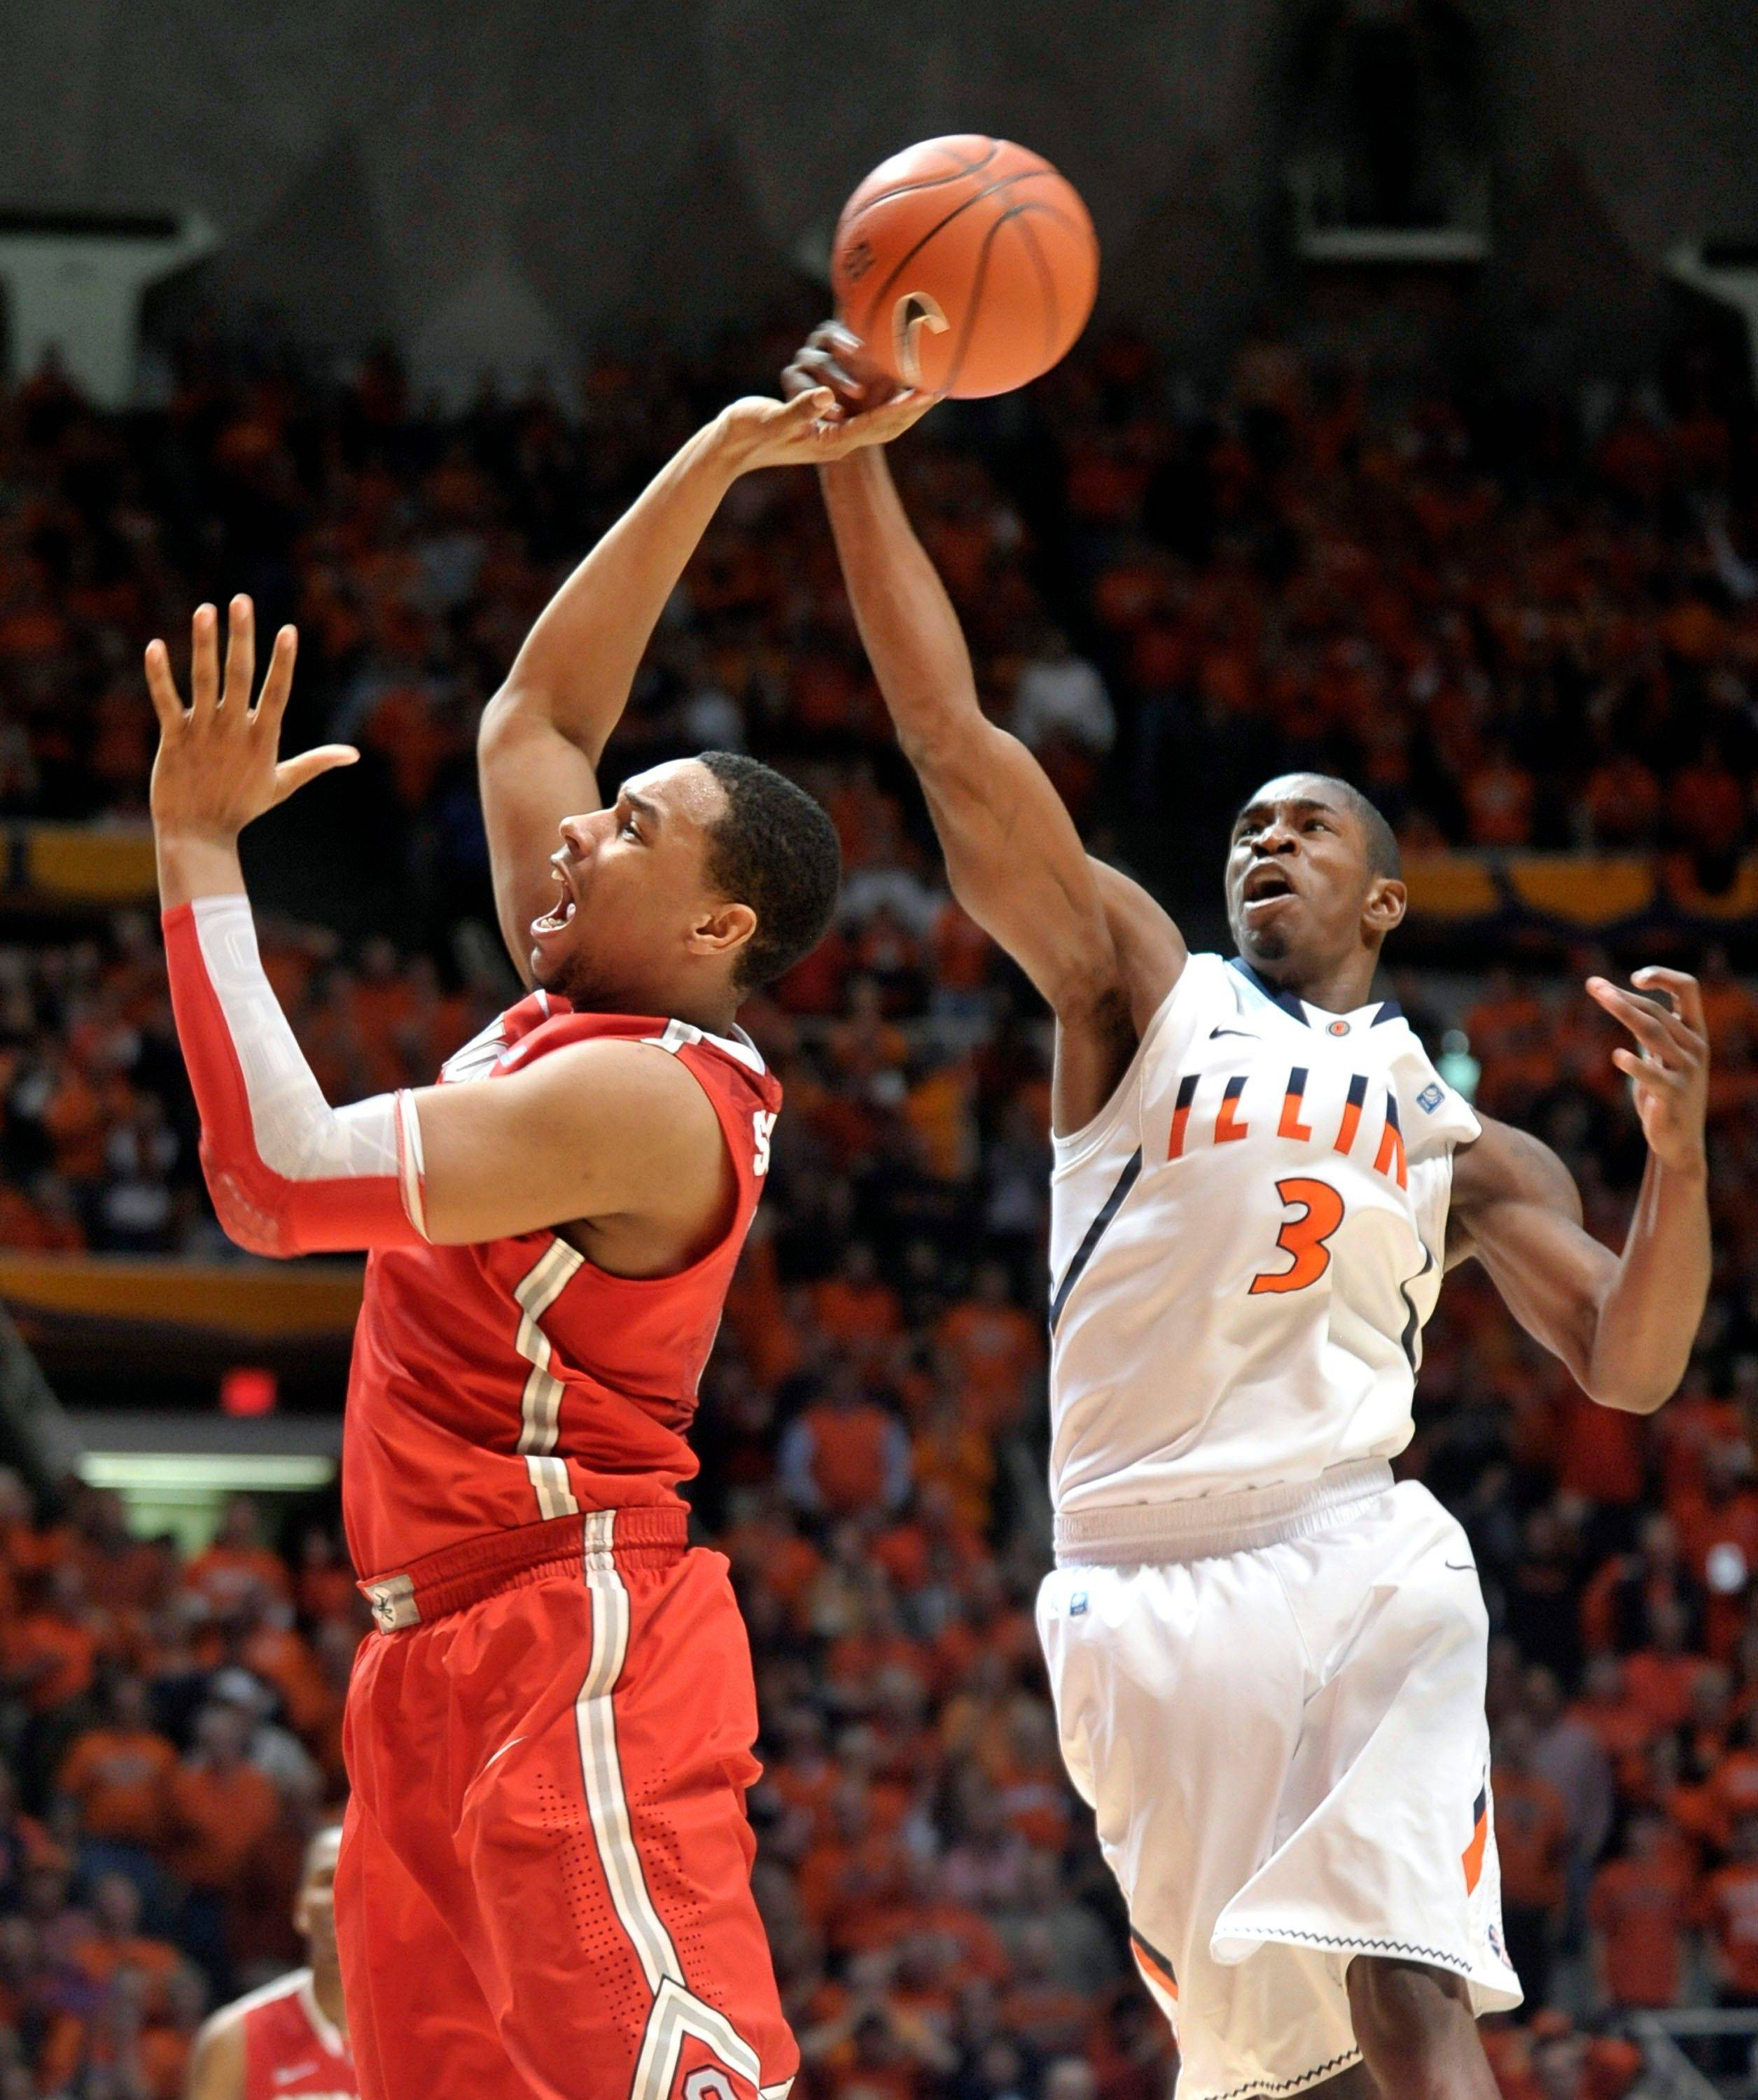 Illinois' Brandon Paul hits the ball out of the hands of Ohio State's Jared Sullinger earlier this season. Paul scored 43 points in the win.